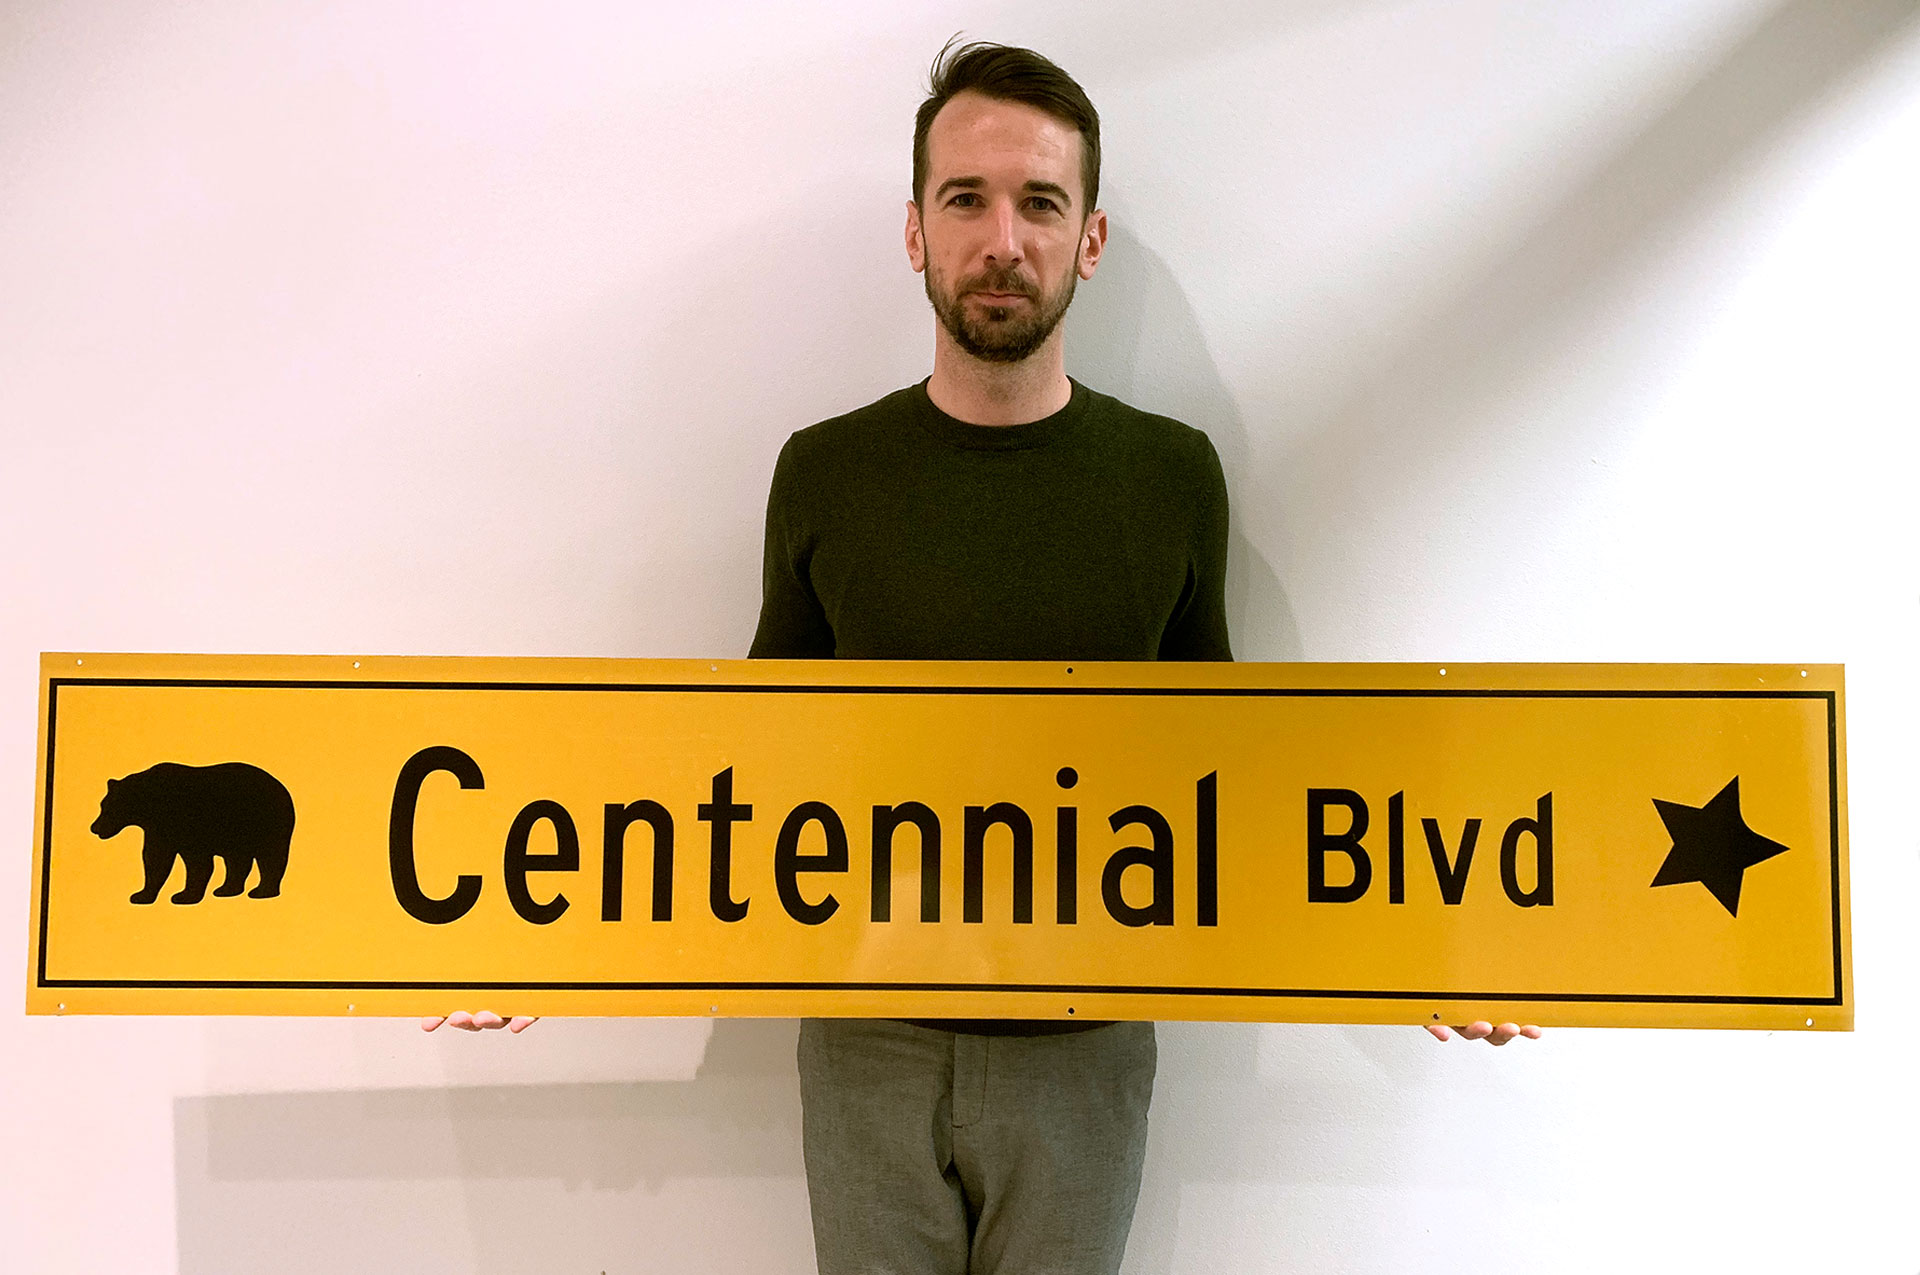 Centennial Blvd Street Sign